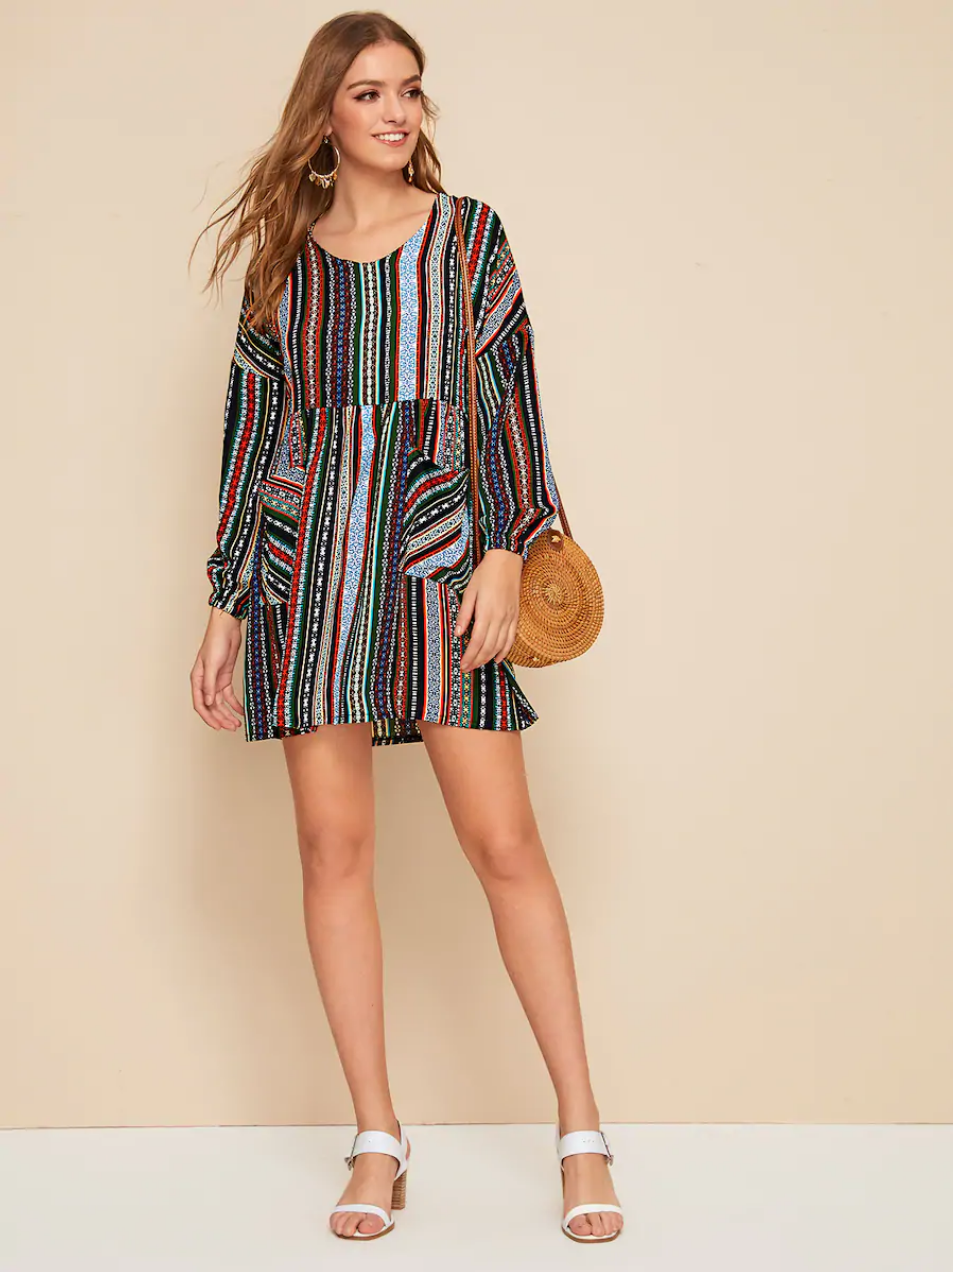 Linglewei New Spring and Summer Women's Dress Bohemian Ethnic style Double pocket dress